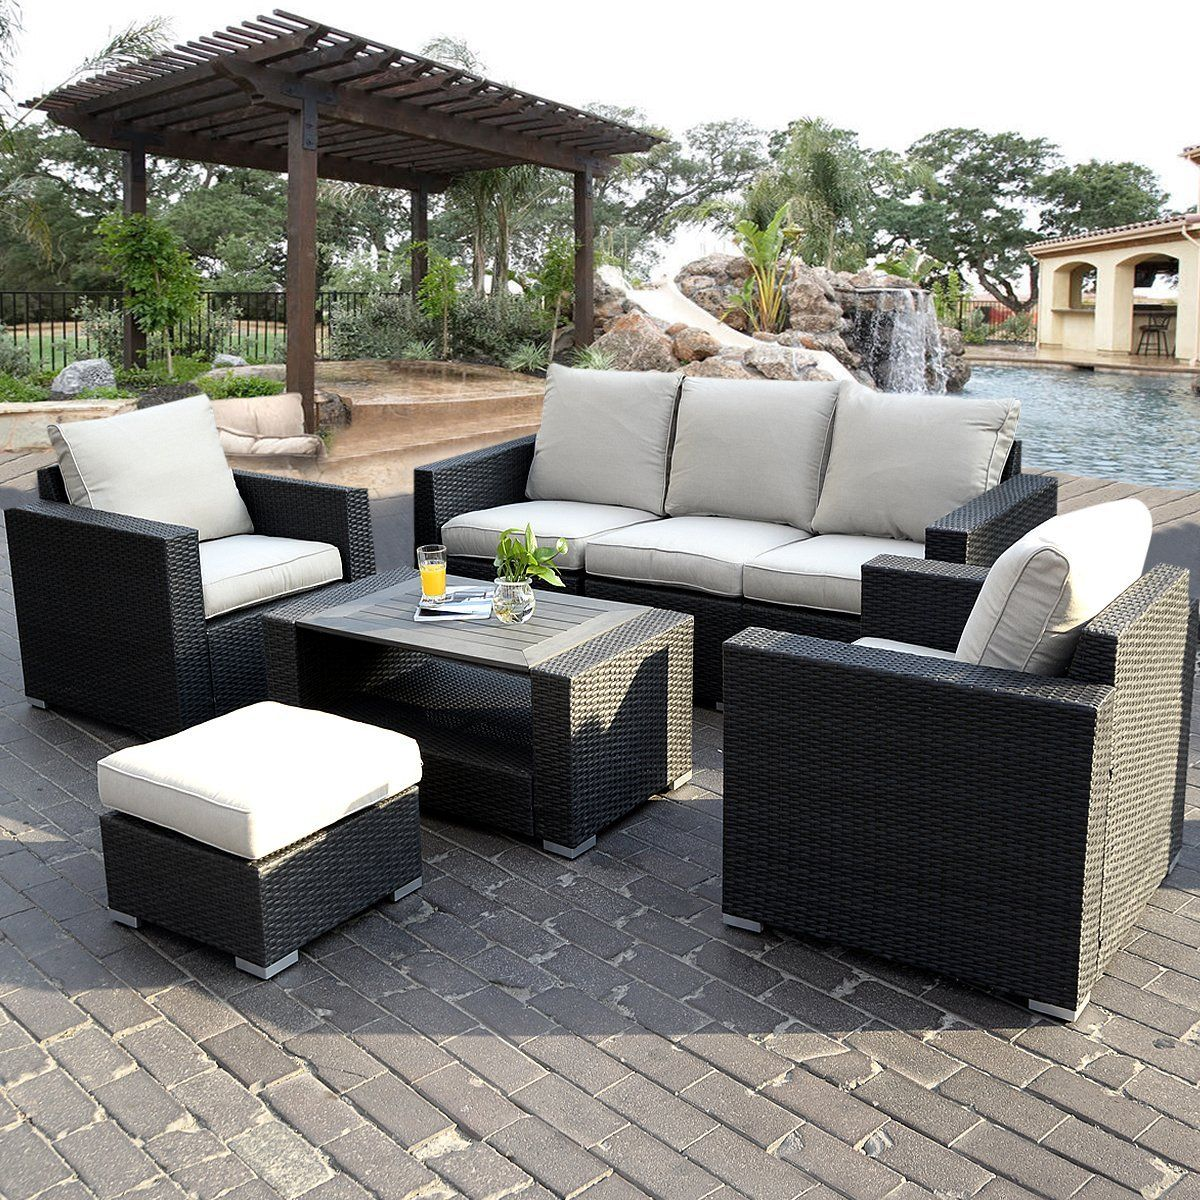 FDS 7PC Rattan Outdoor Garden Furniture Patio Corner Sofa Set PE Wicker  Conservatory: Amazon.